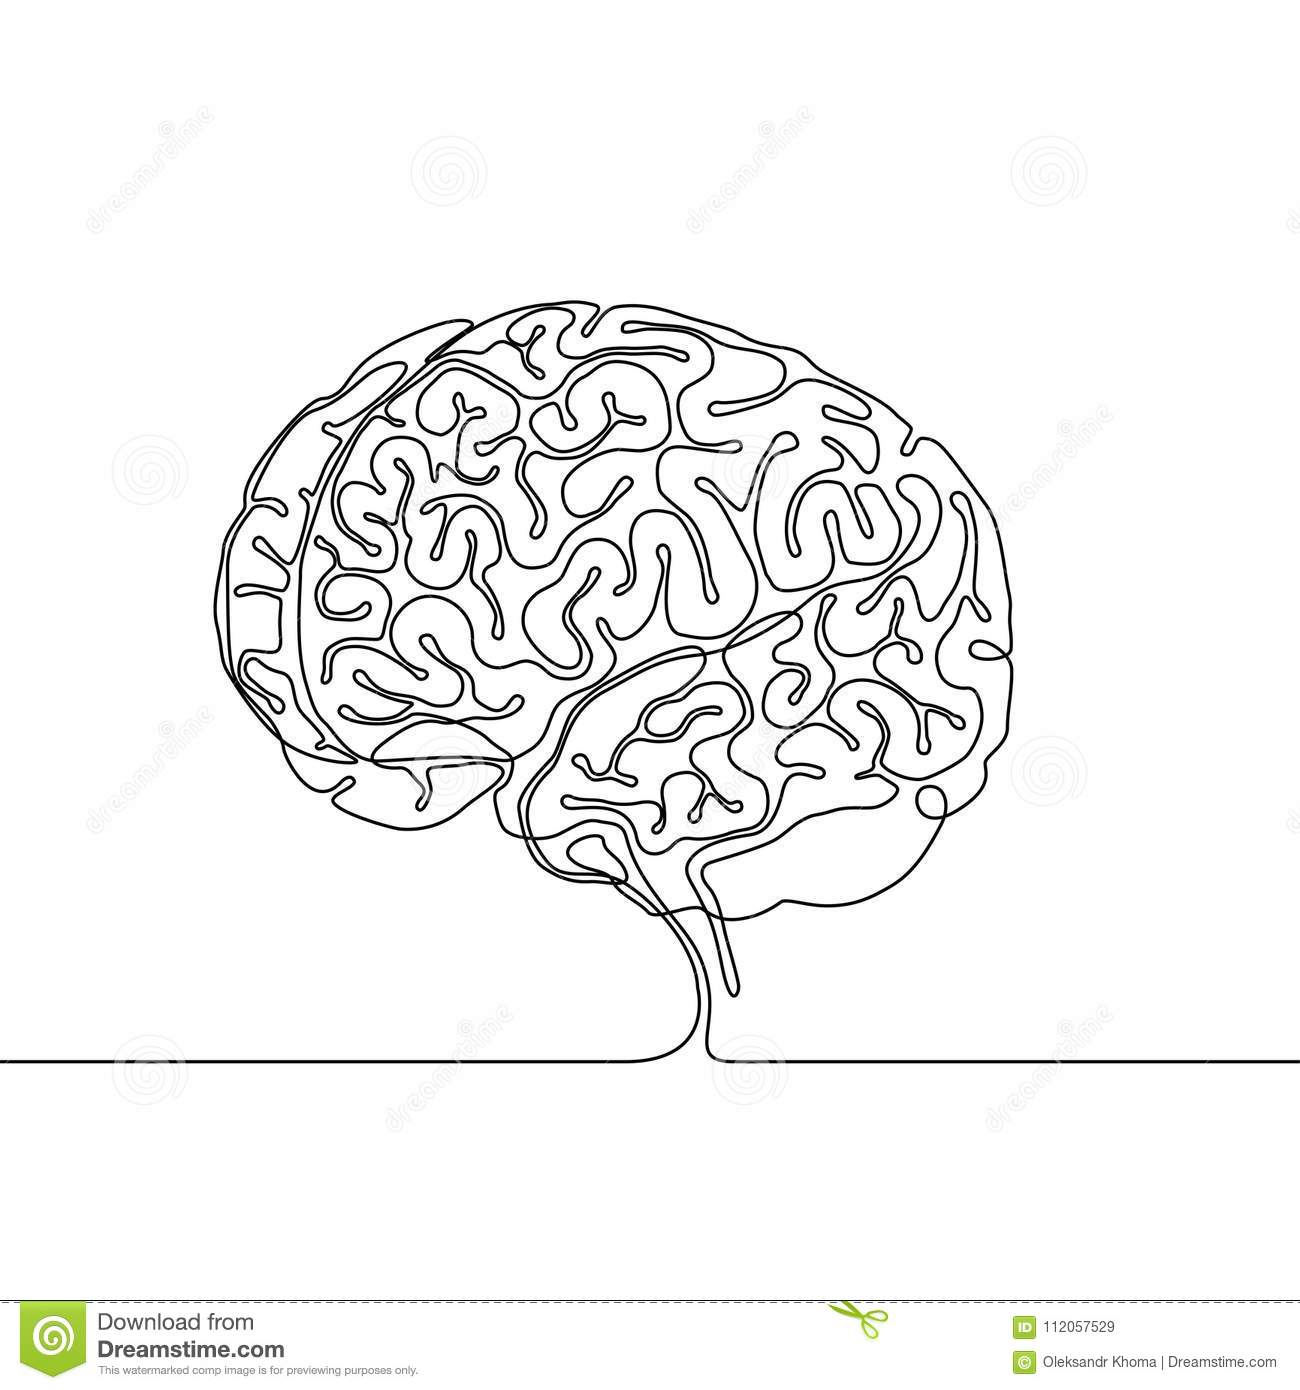 Continuous line drawing of a human brain with gyri and sulci